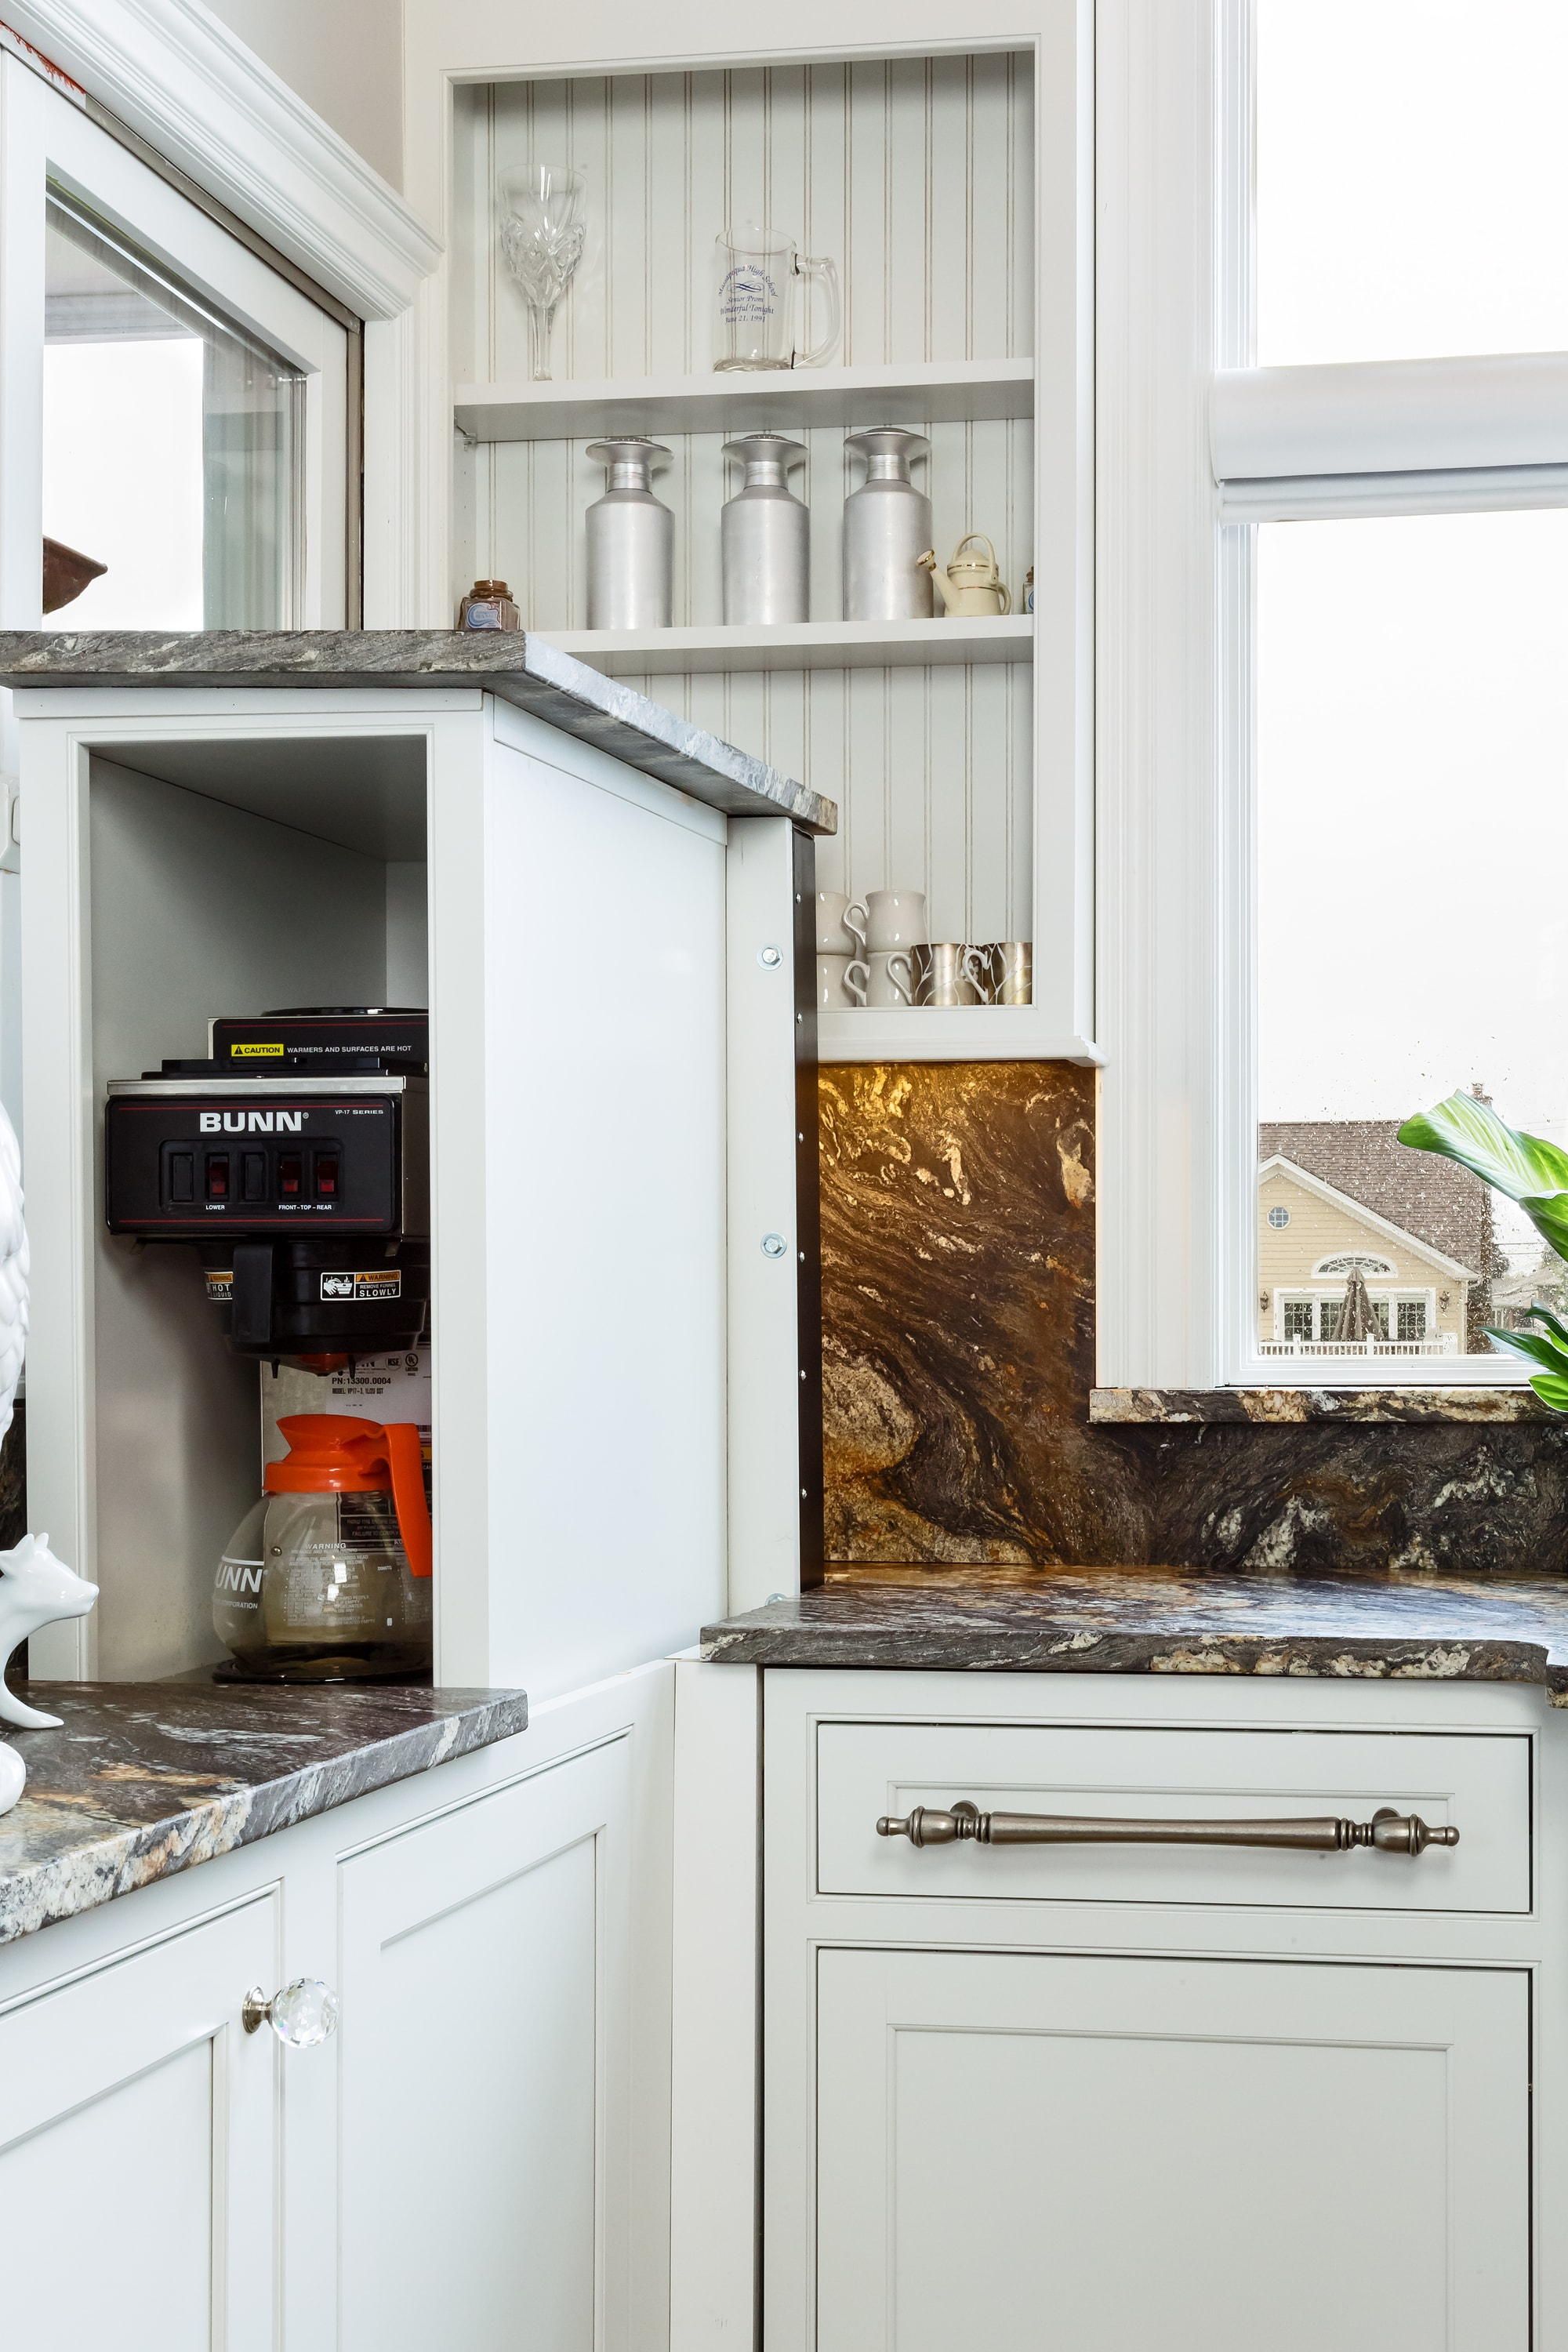 Traditional style kitchen with custom built coffee maker storage